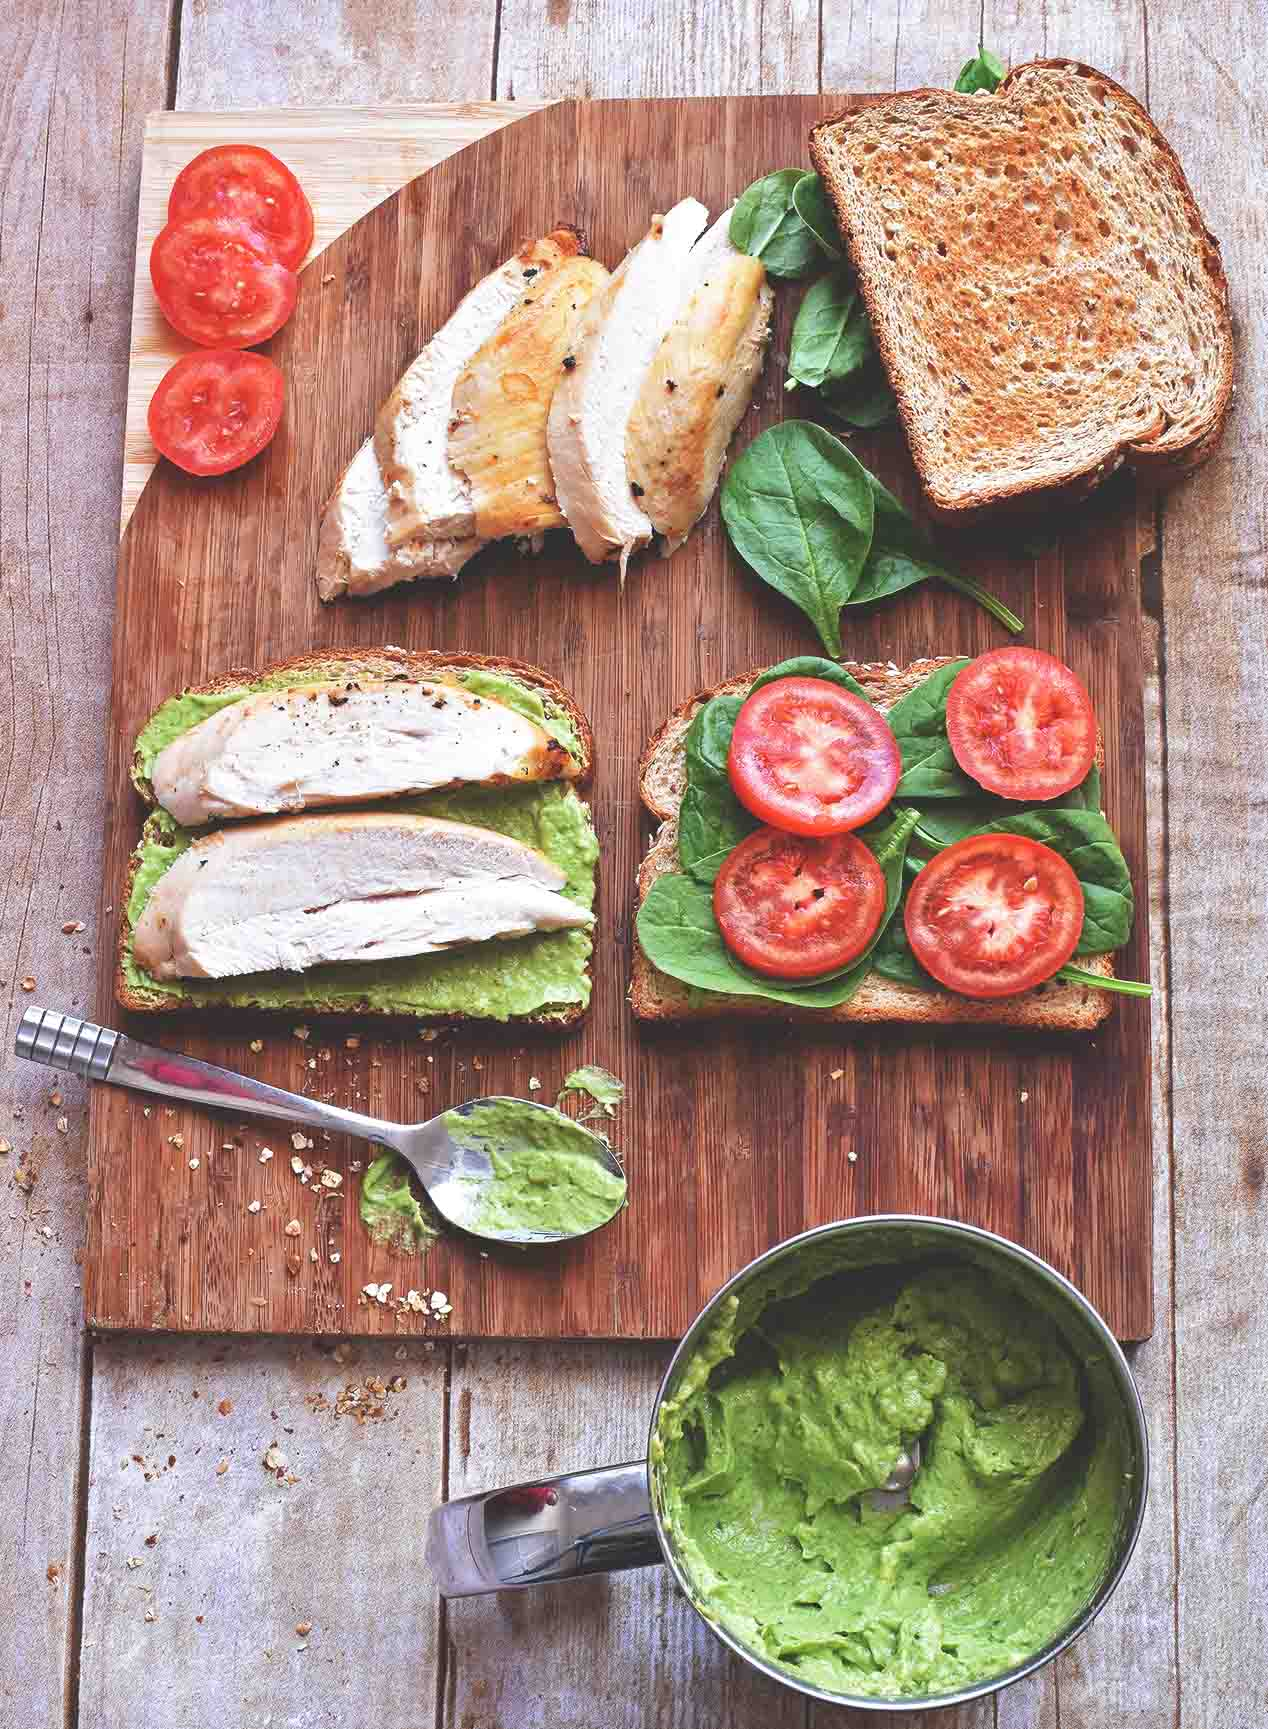 Roast Chicken Sandwich with Green Delight Sauce - Pepper Delight #pepperdelightblog #recipe #chicken #turkey #wholeroastedchicken #sandwich #greensauce #christmasrecipes #leftoverrecipes #avocado #5minuterecipes